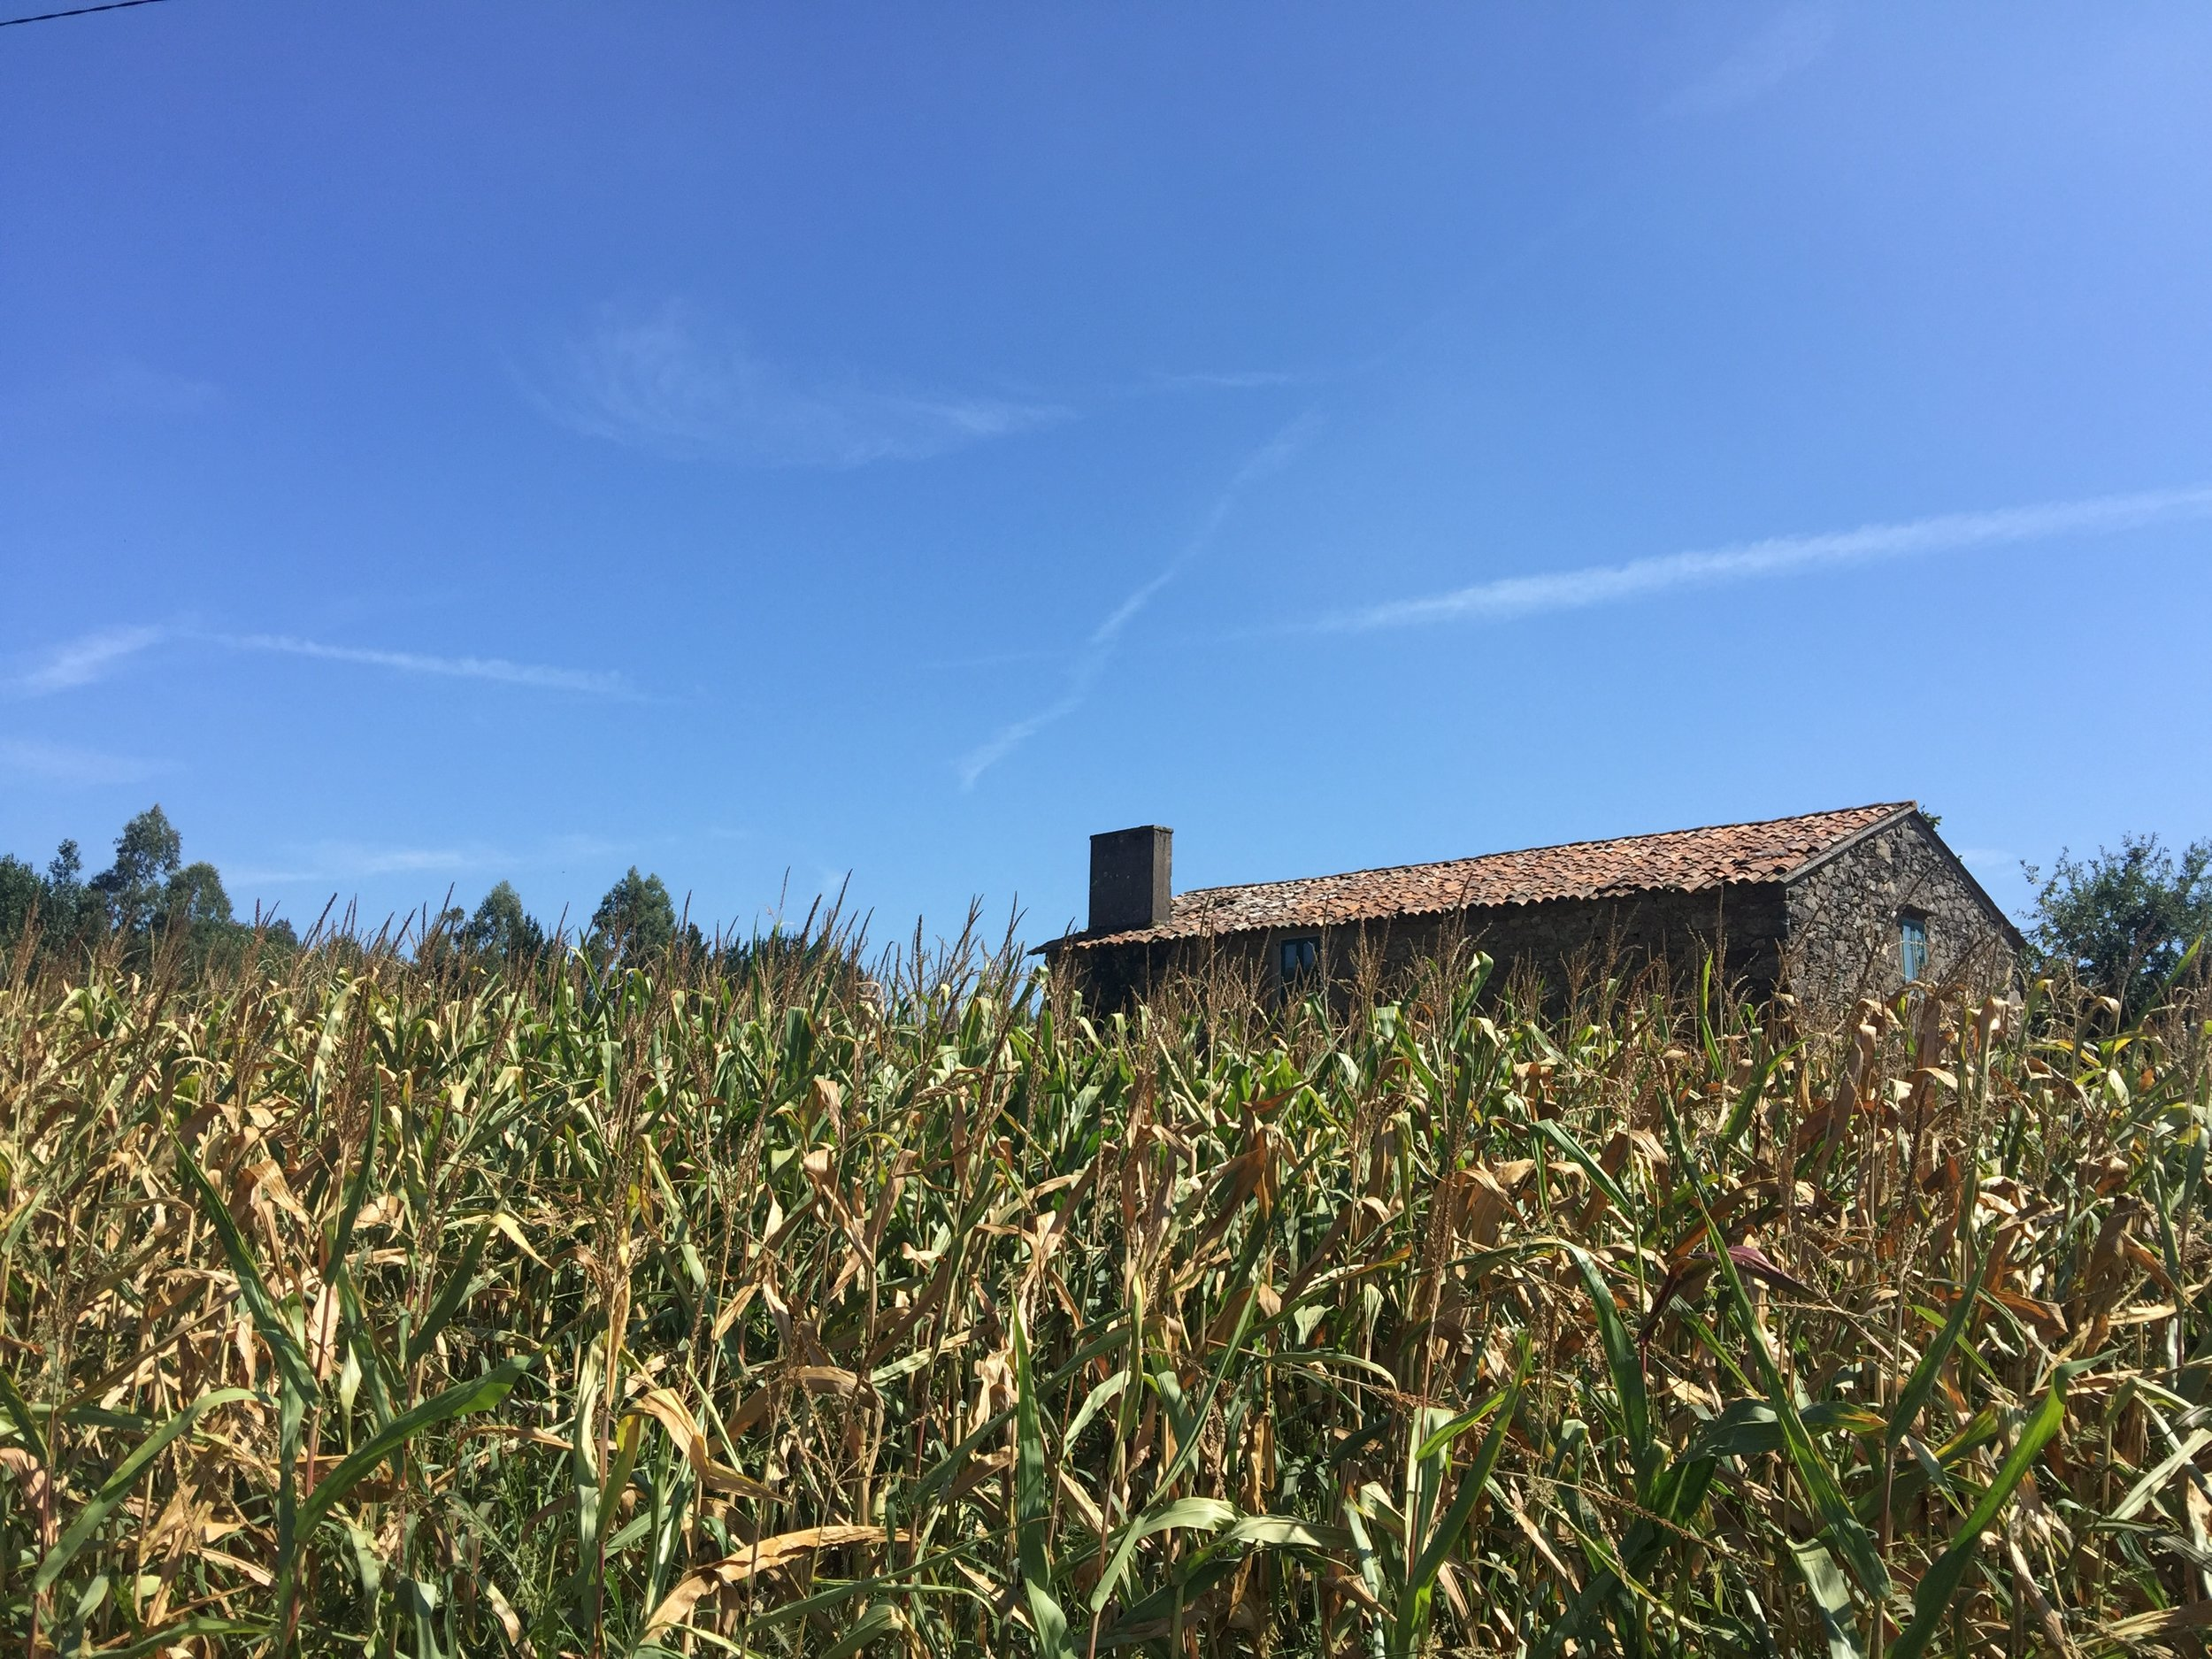 There's a lot of corn in Galicia.